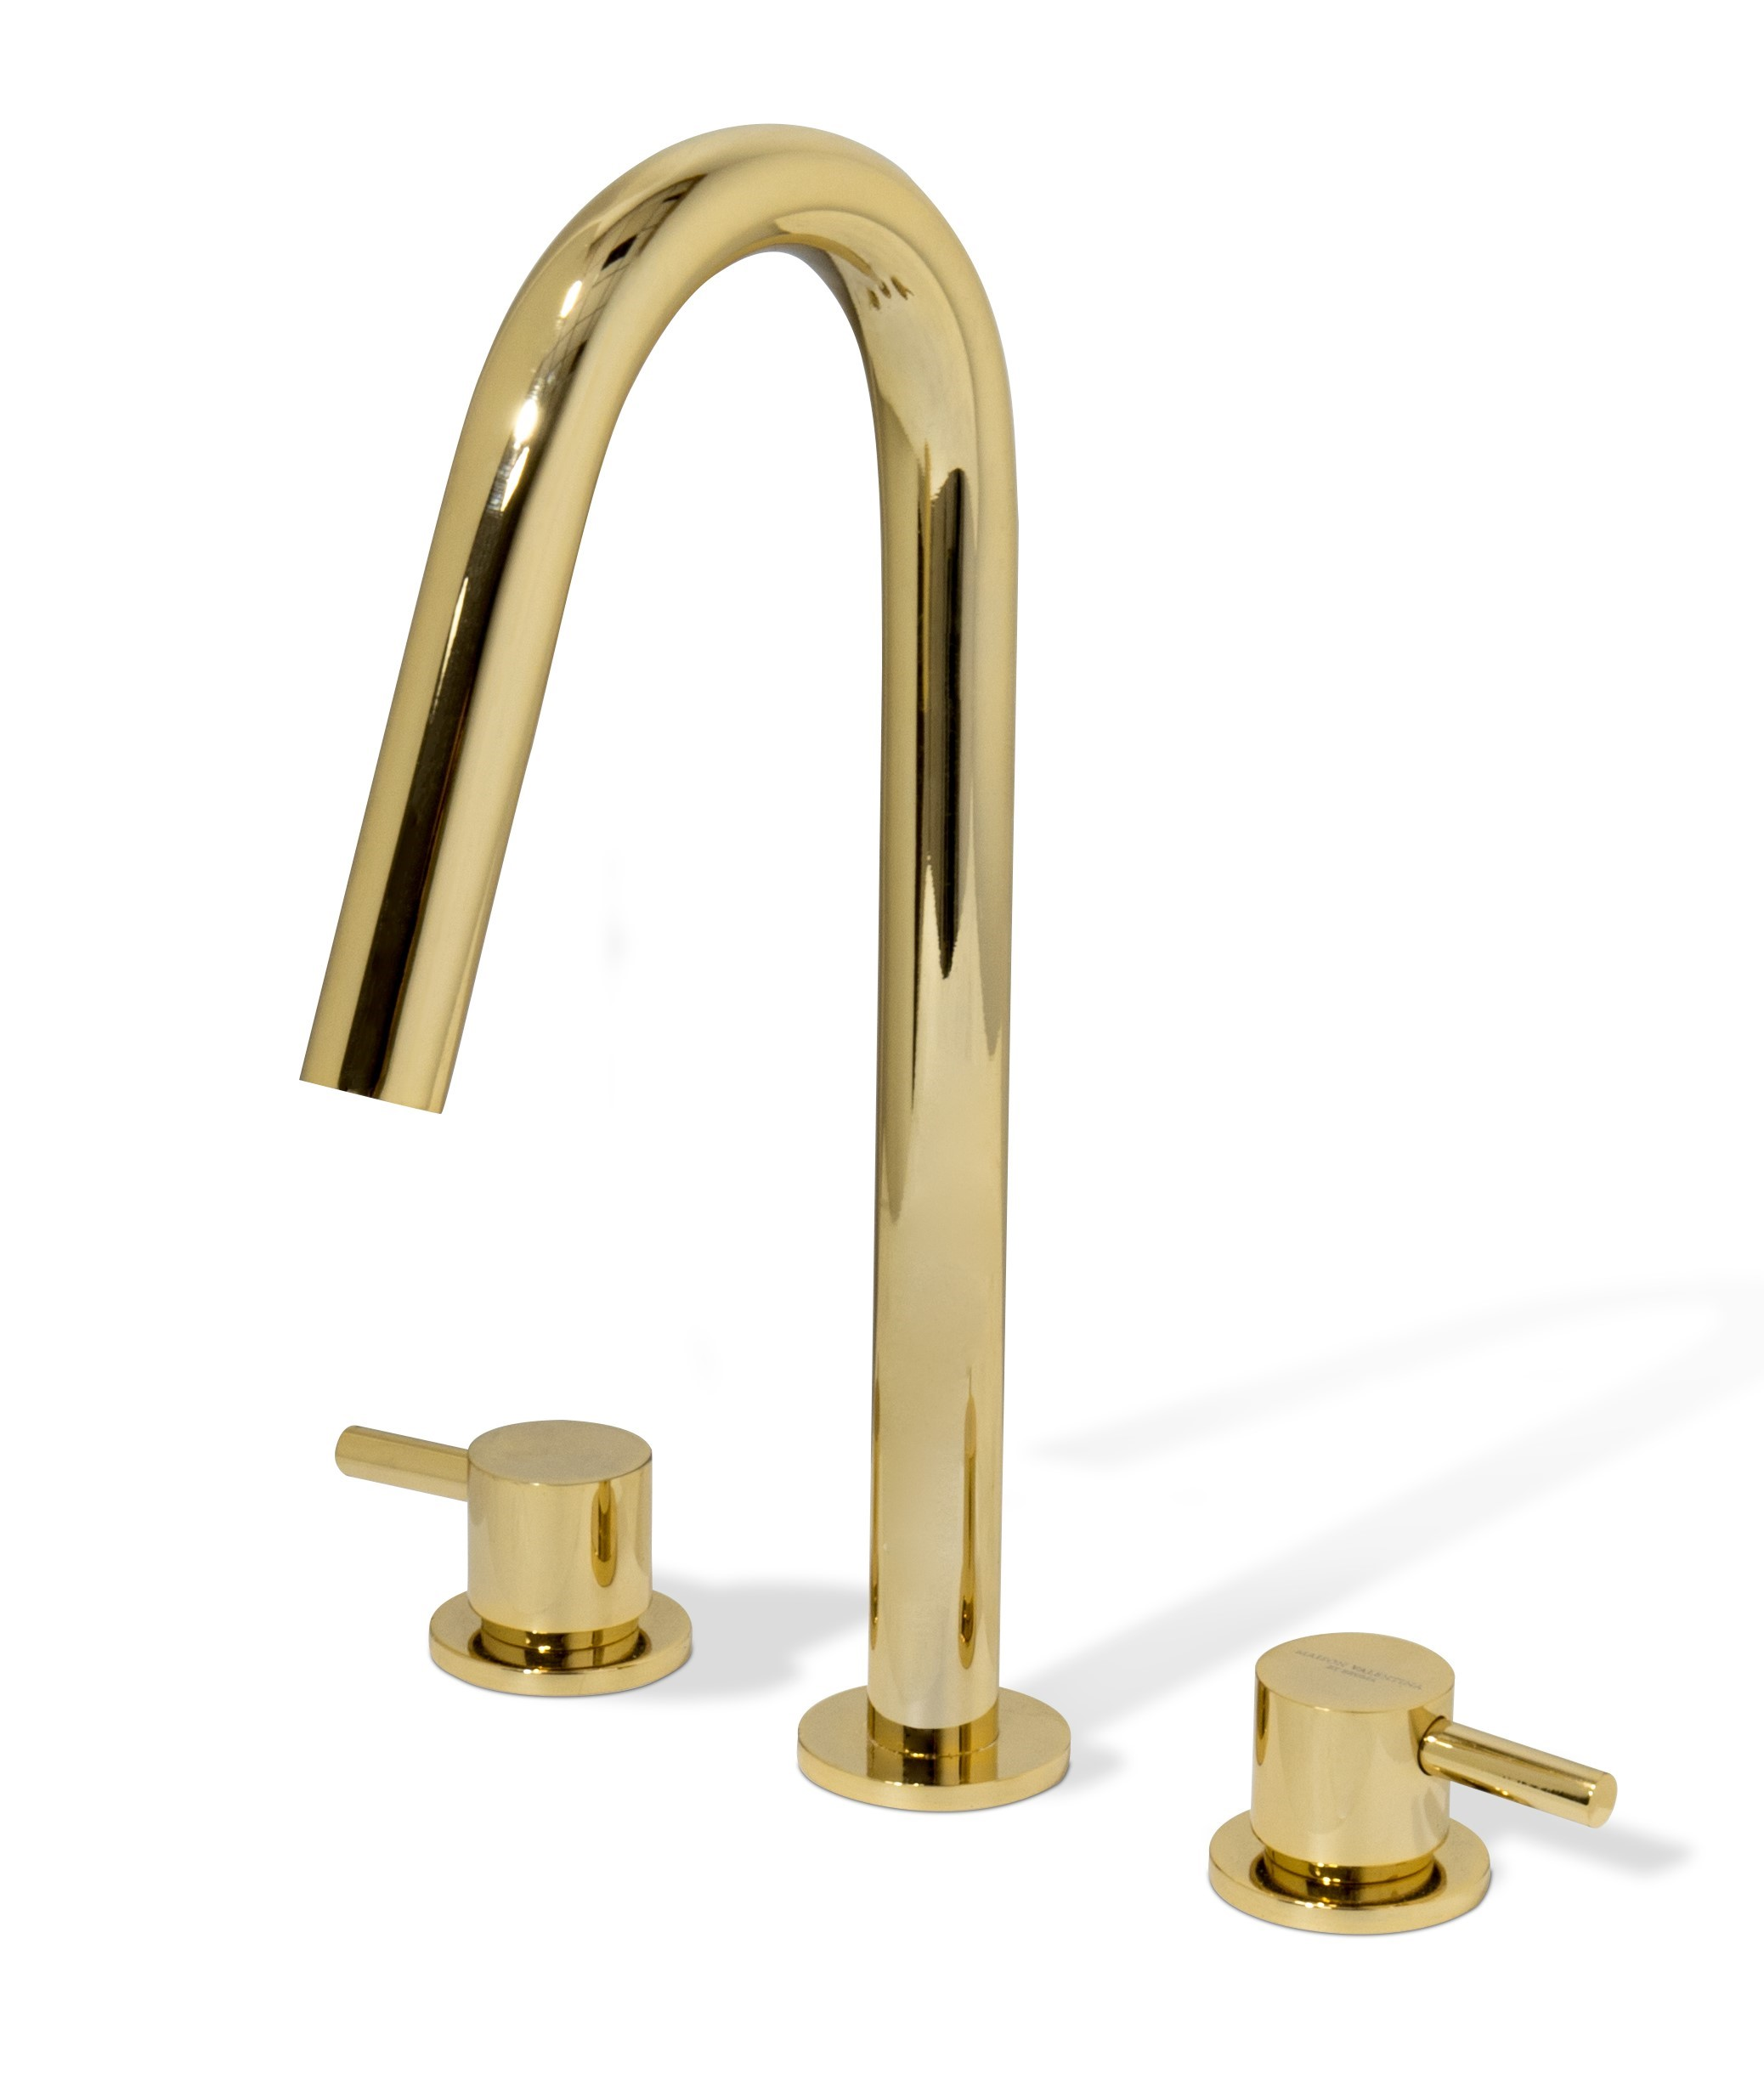 bathroom, golden bathroom, gold,maison valentina, bathub, mirror, rug, tap, bathroom decoration, bathroom decor bathroom design Add a Touch of Gold to Your Bathroom – 5 Ideas to Make it Shine ouch of gold to your bathroom 5 ideas to add a origin three hole mixer tap 1 HR 3